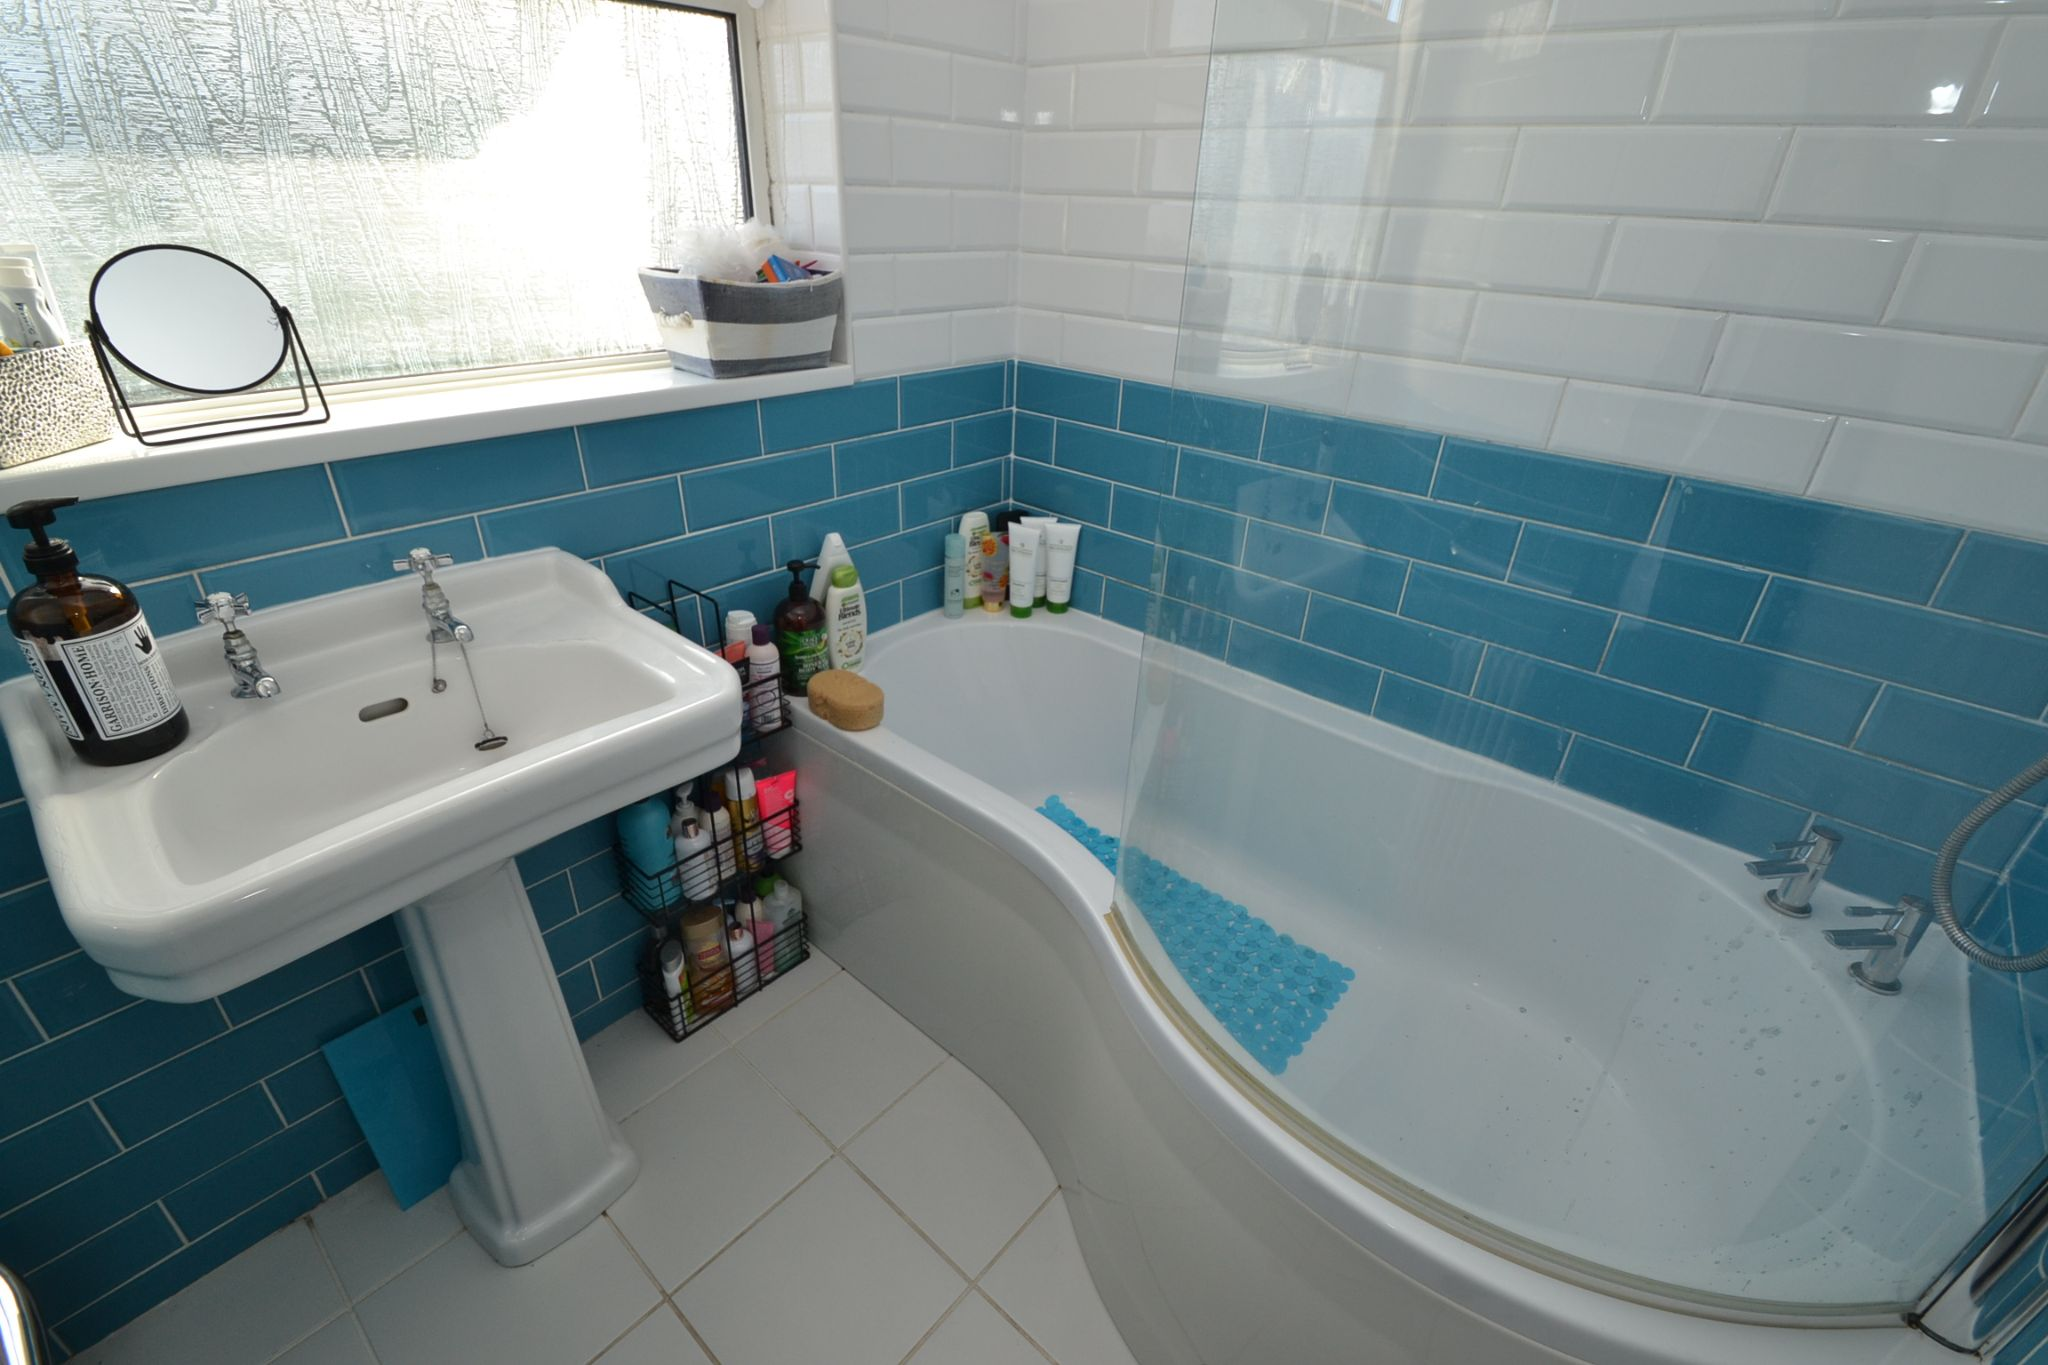 5 Bedroom Semi-detached House For Sale - Photograph 19